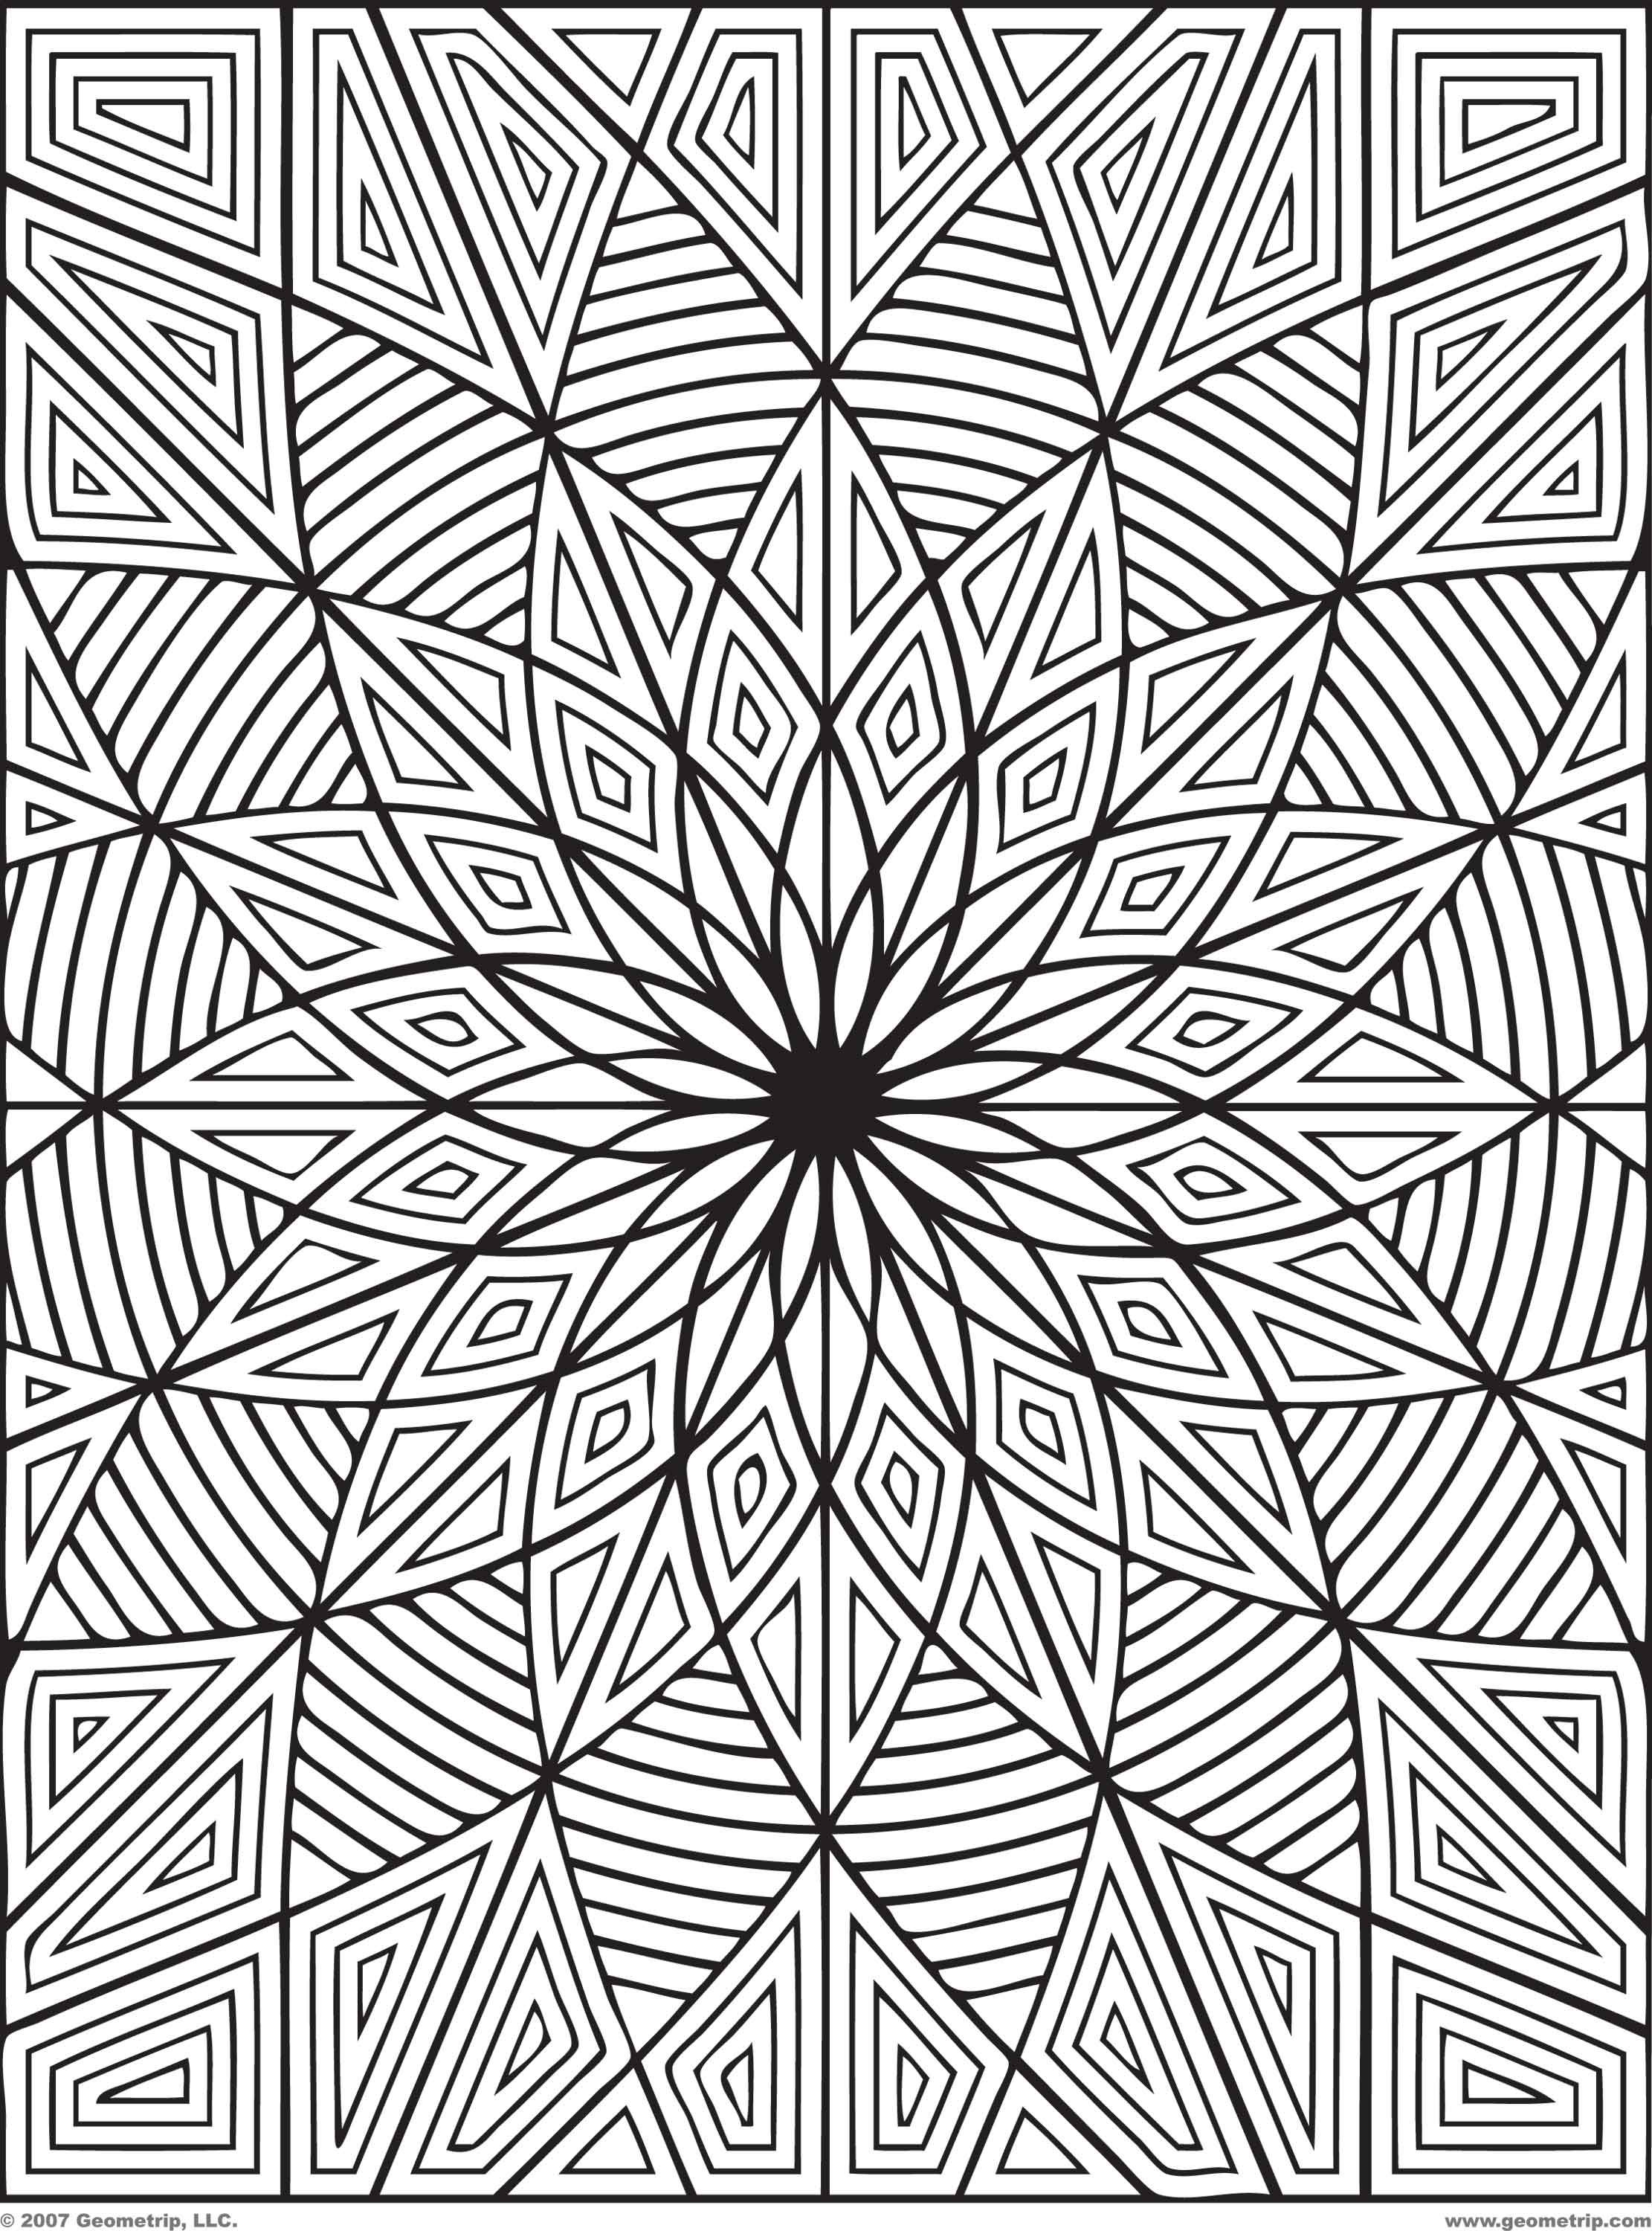 Geometrip Com Free Geometric Coloring Designs Rectangles Geometric Coloring Pages Pattern Coloring Pages Coloring Pages